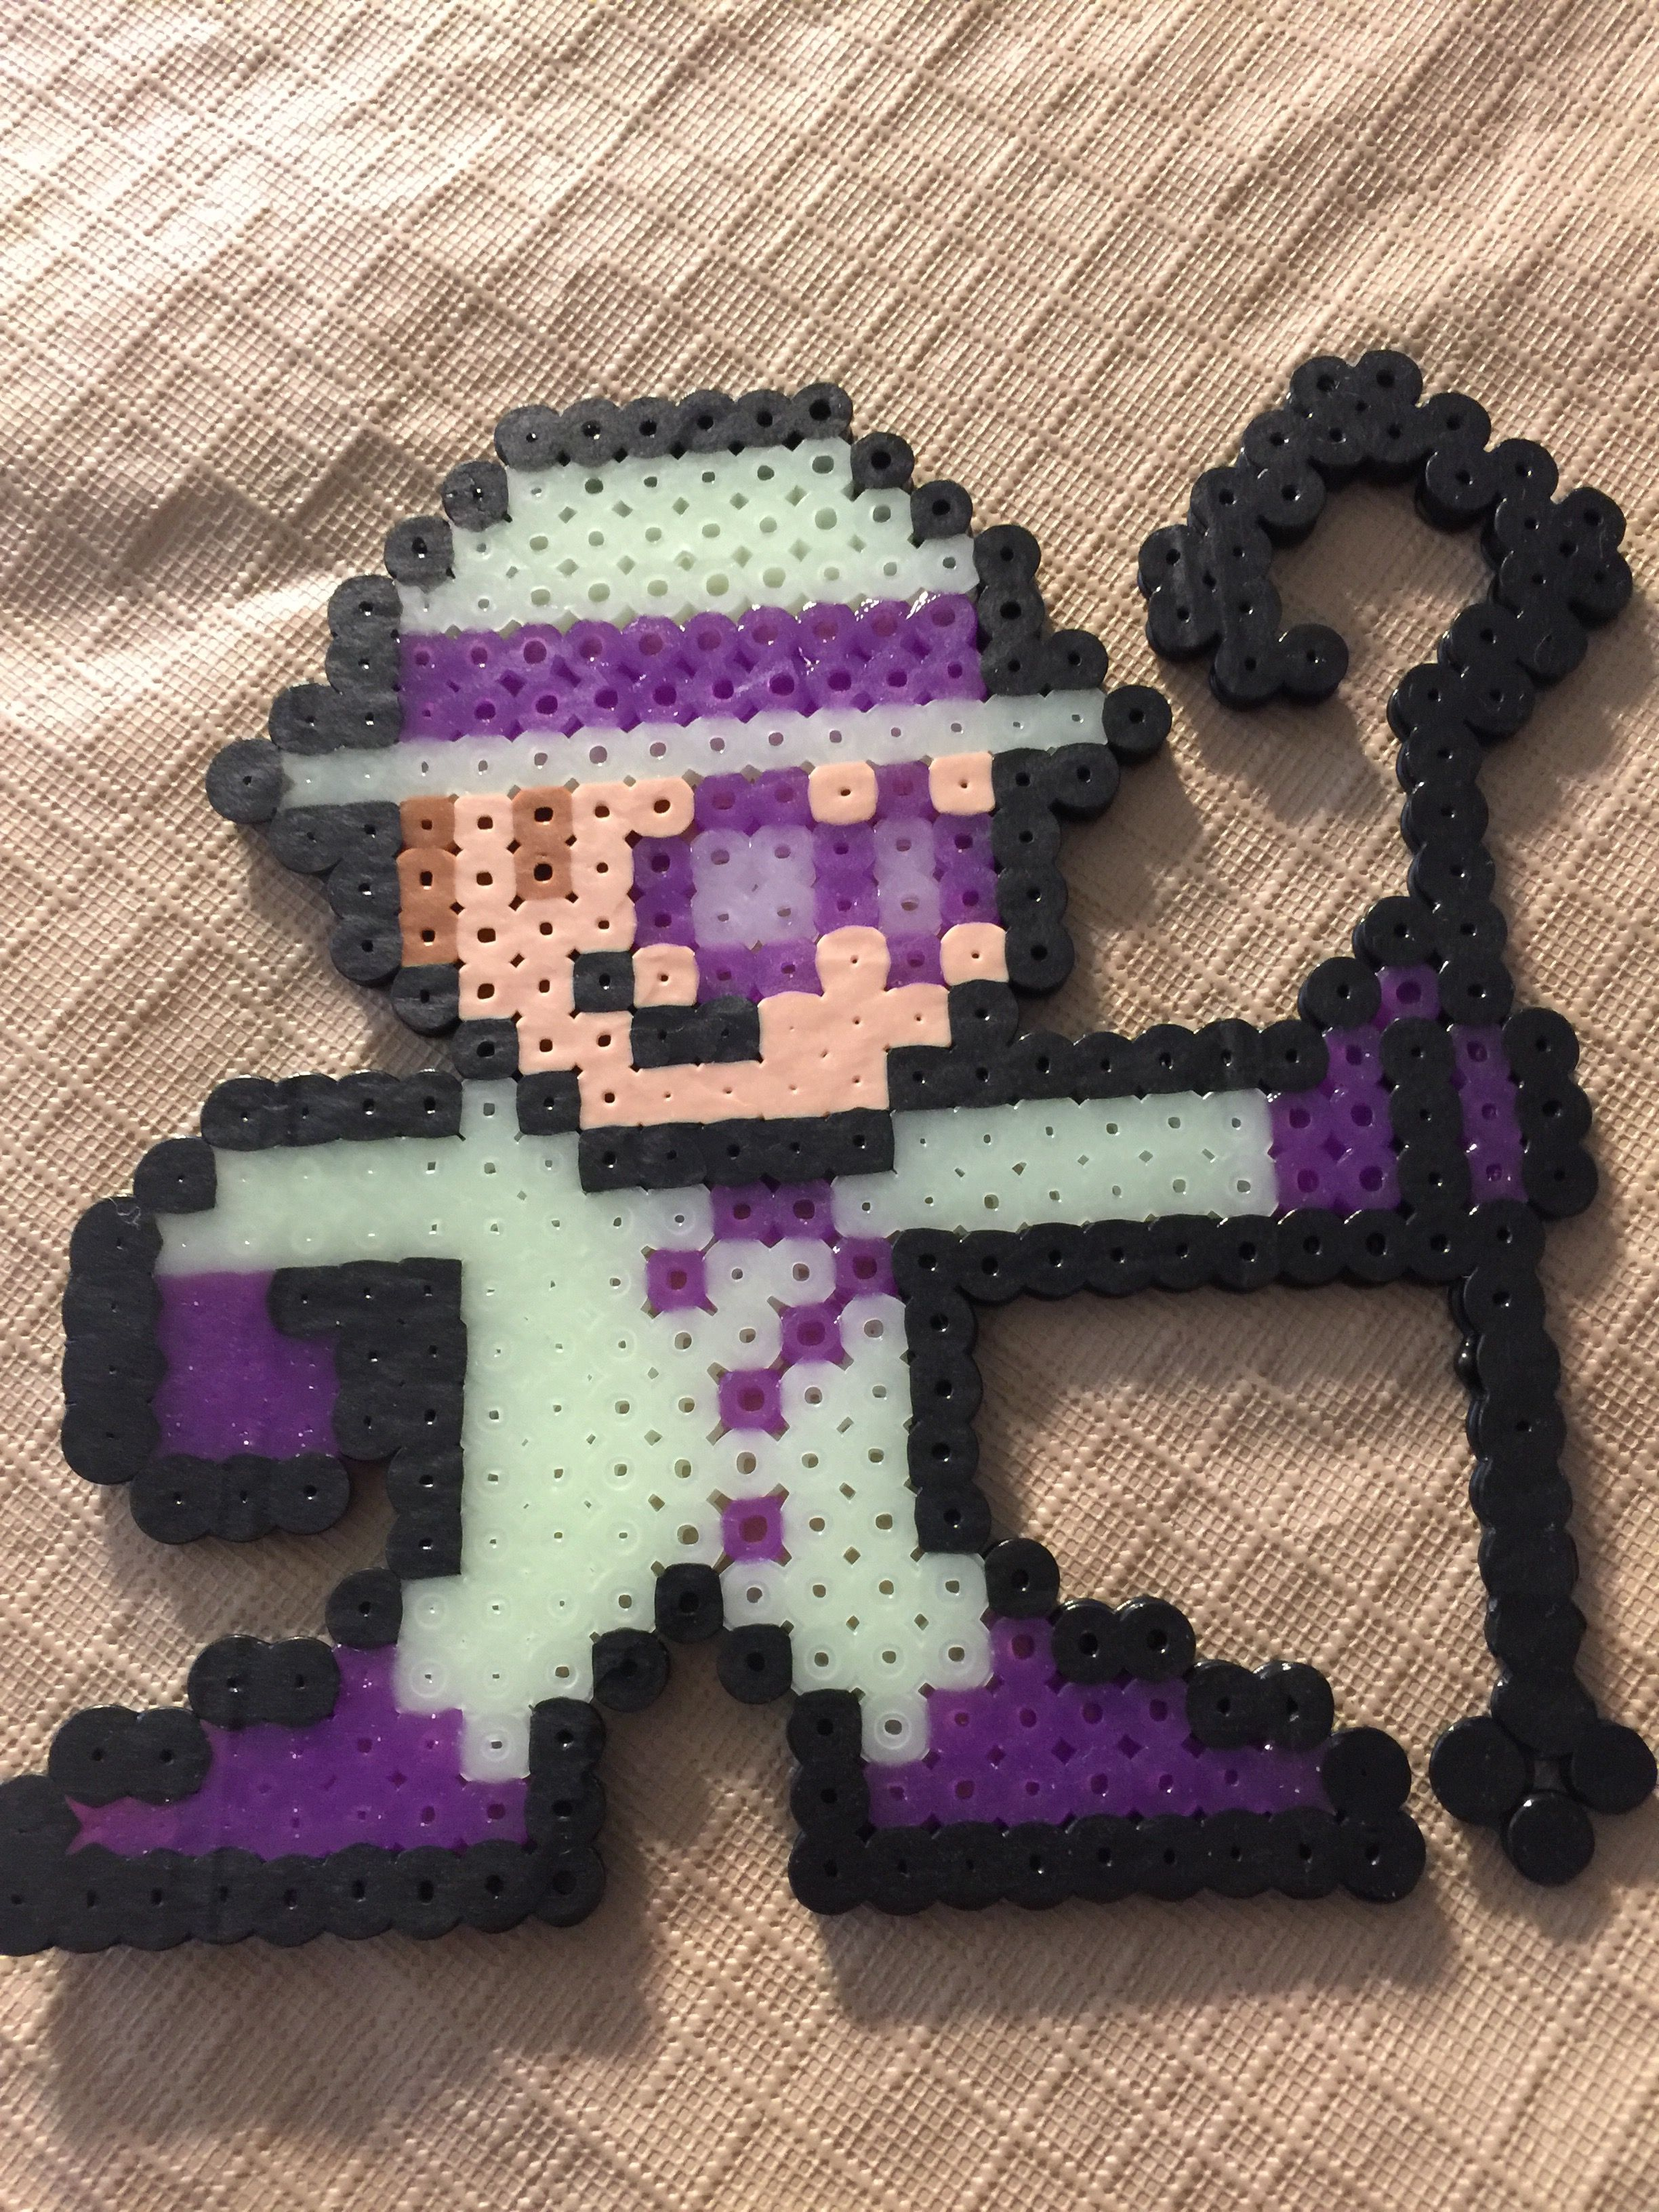 The riddle with glow in dark costume and hat